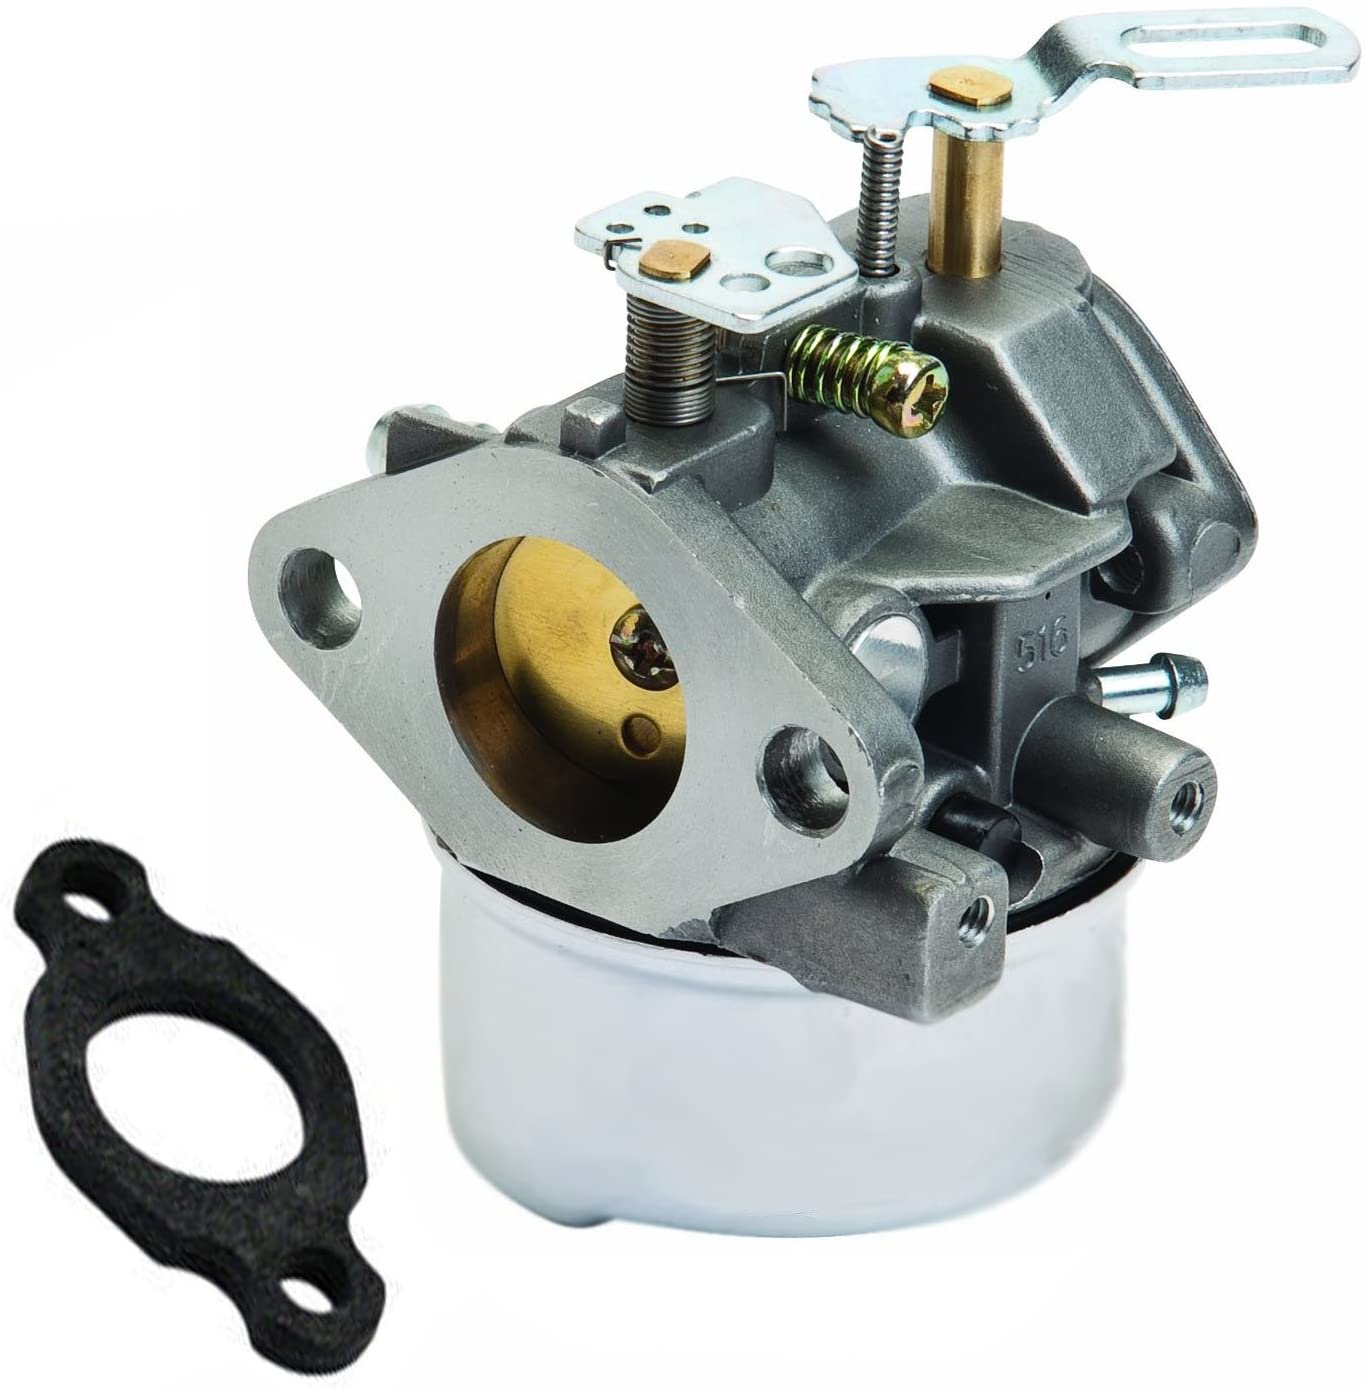 Carburetor for Tecumseh Models HMSK100-159295W HMSK100-159297W HMSK100-159302W